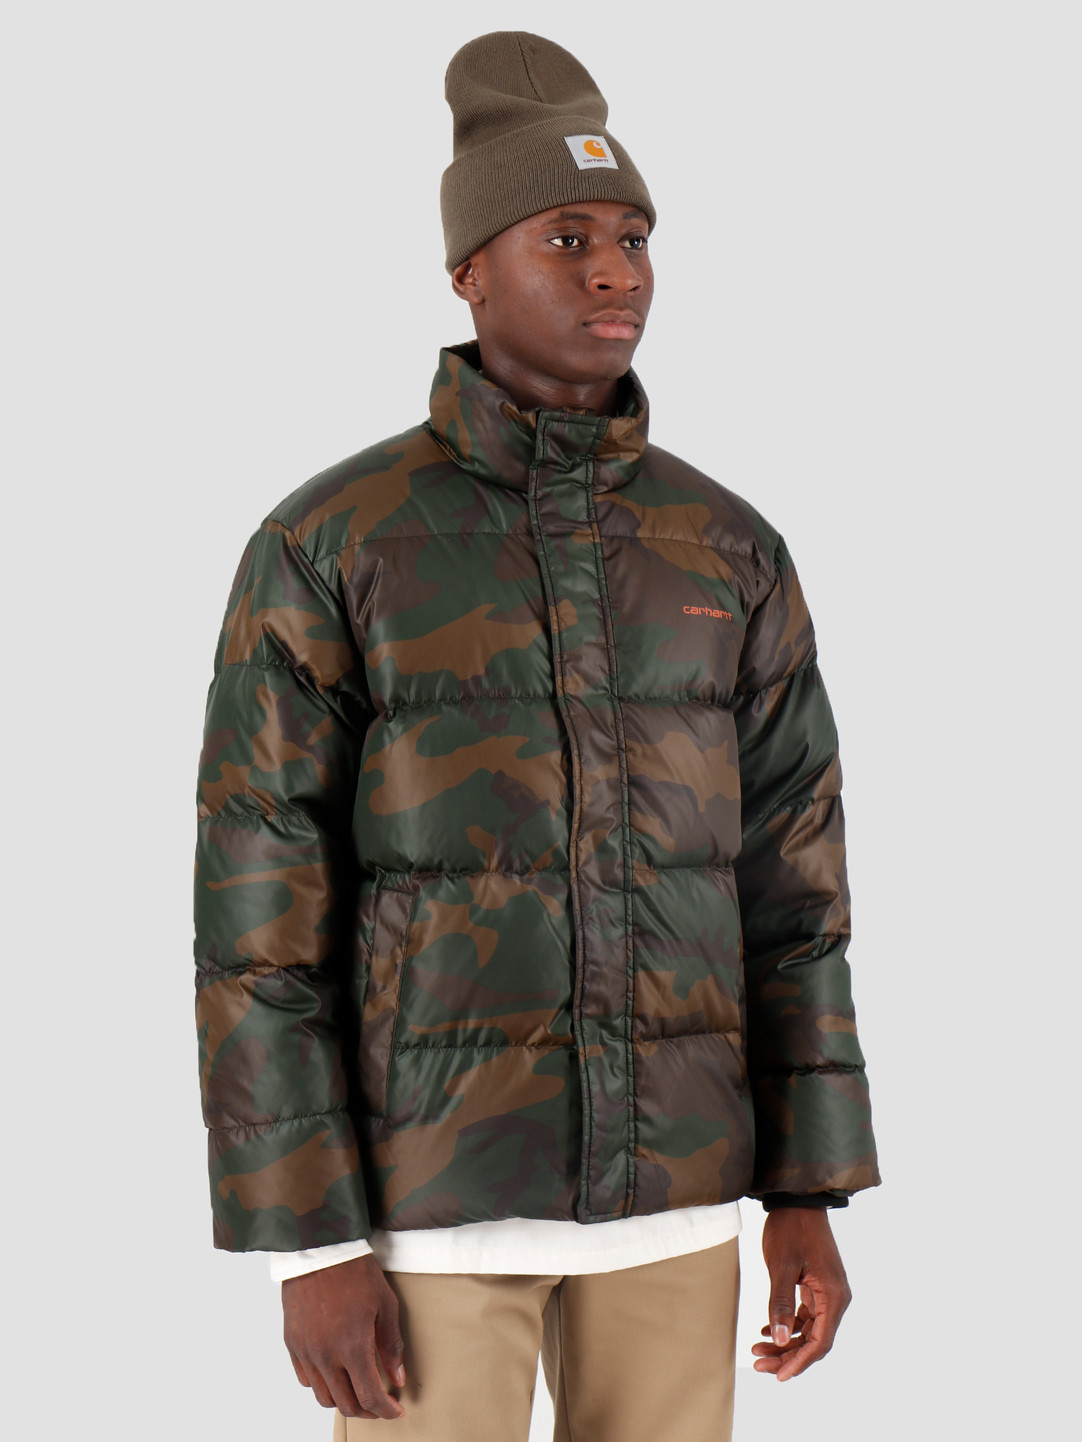 buy online hot products 50% price Carhartt WIP Deming Jacket Camo Evergreen Brick Orange I025113